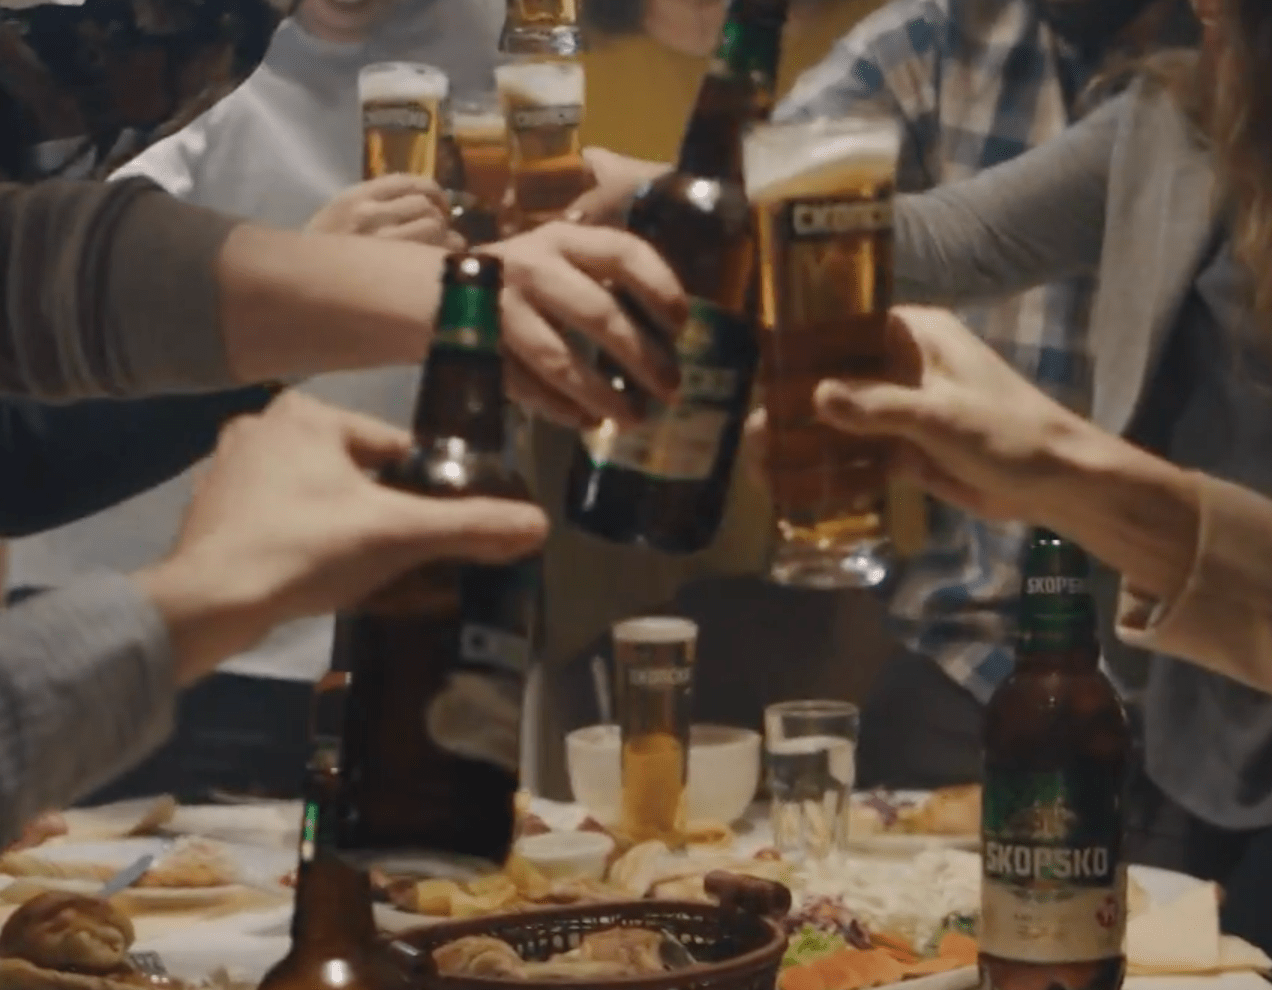 Skopsko's Newest Commercial Reminds Us Why We Love Being Macedonian